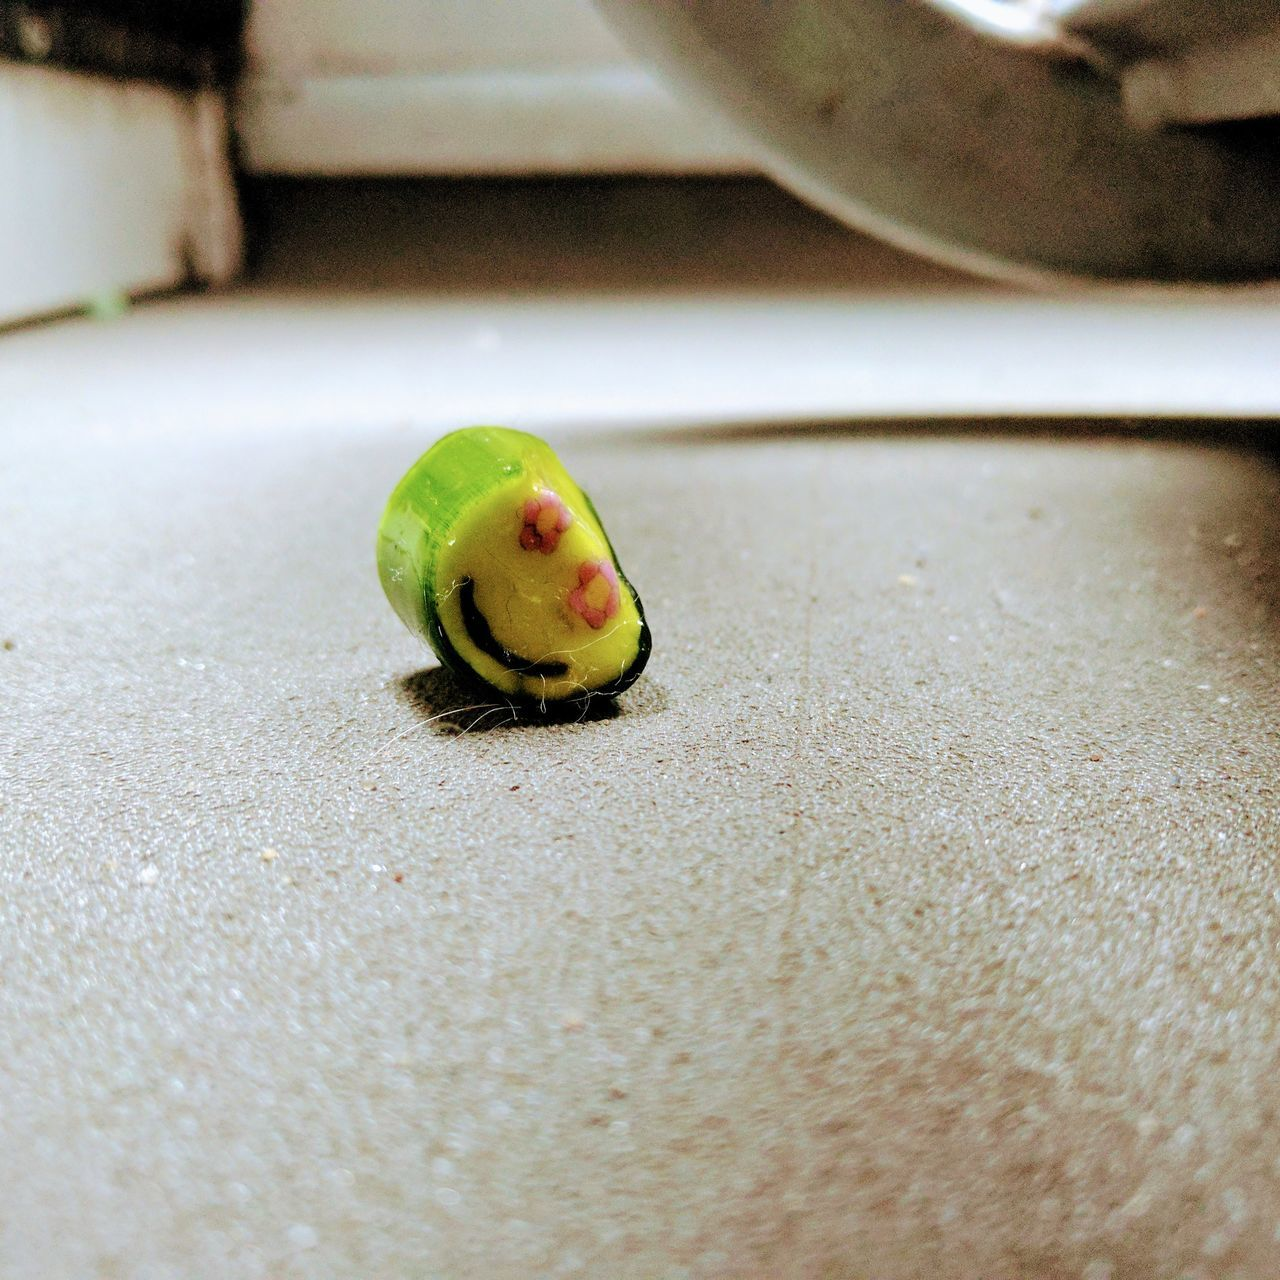 Candyminimal Intrain Food Green Smiles Candy Smiles ツ  Scary Stuff  Abandoned Candy Abandoned